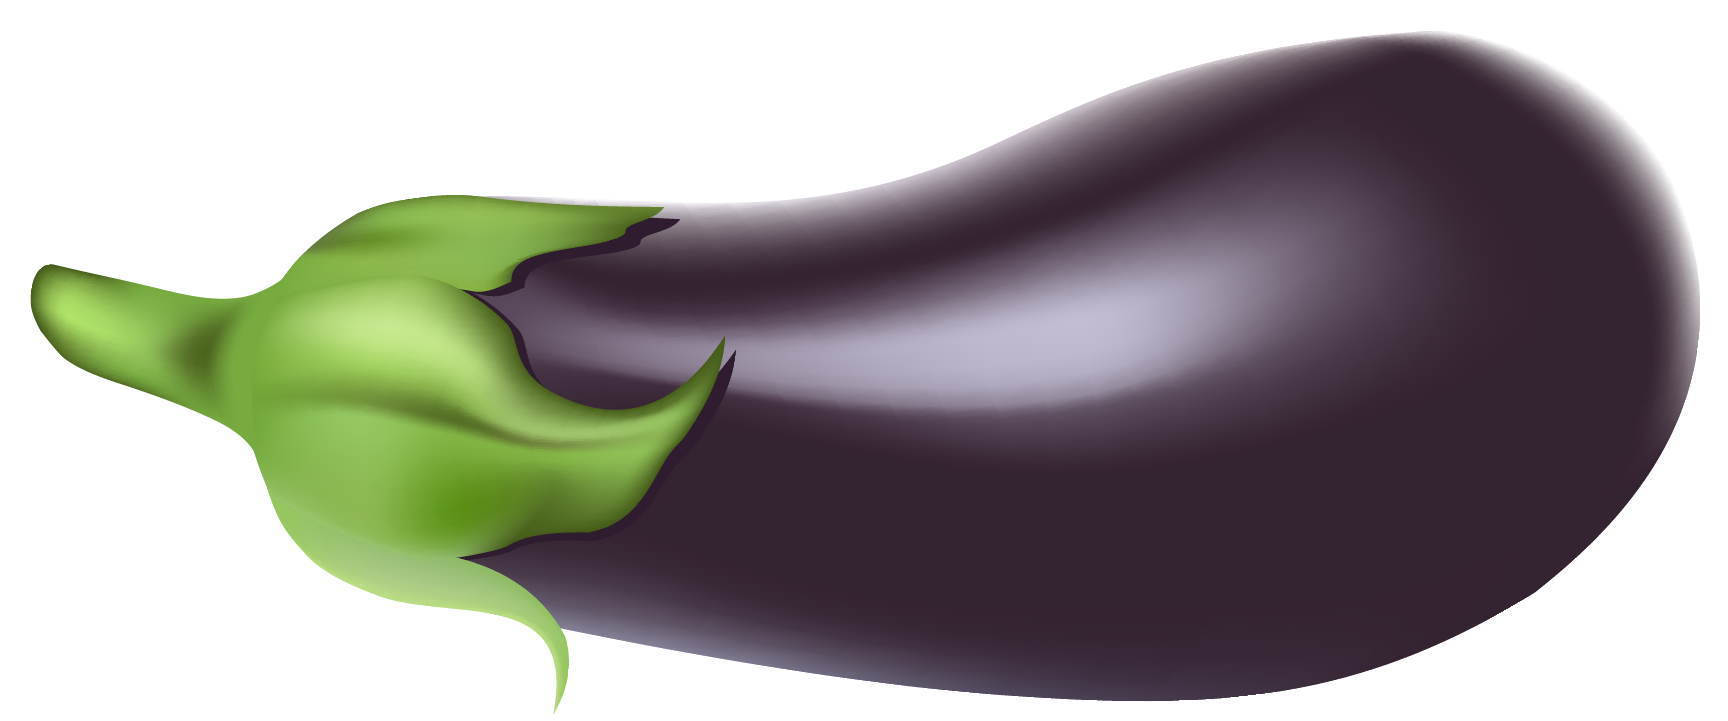 Safe clipart combination. Eggplant png picture thanksgiving